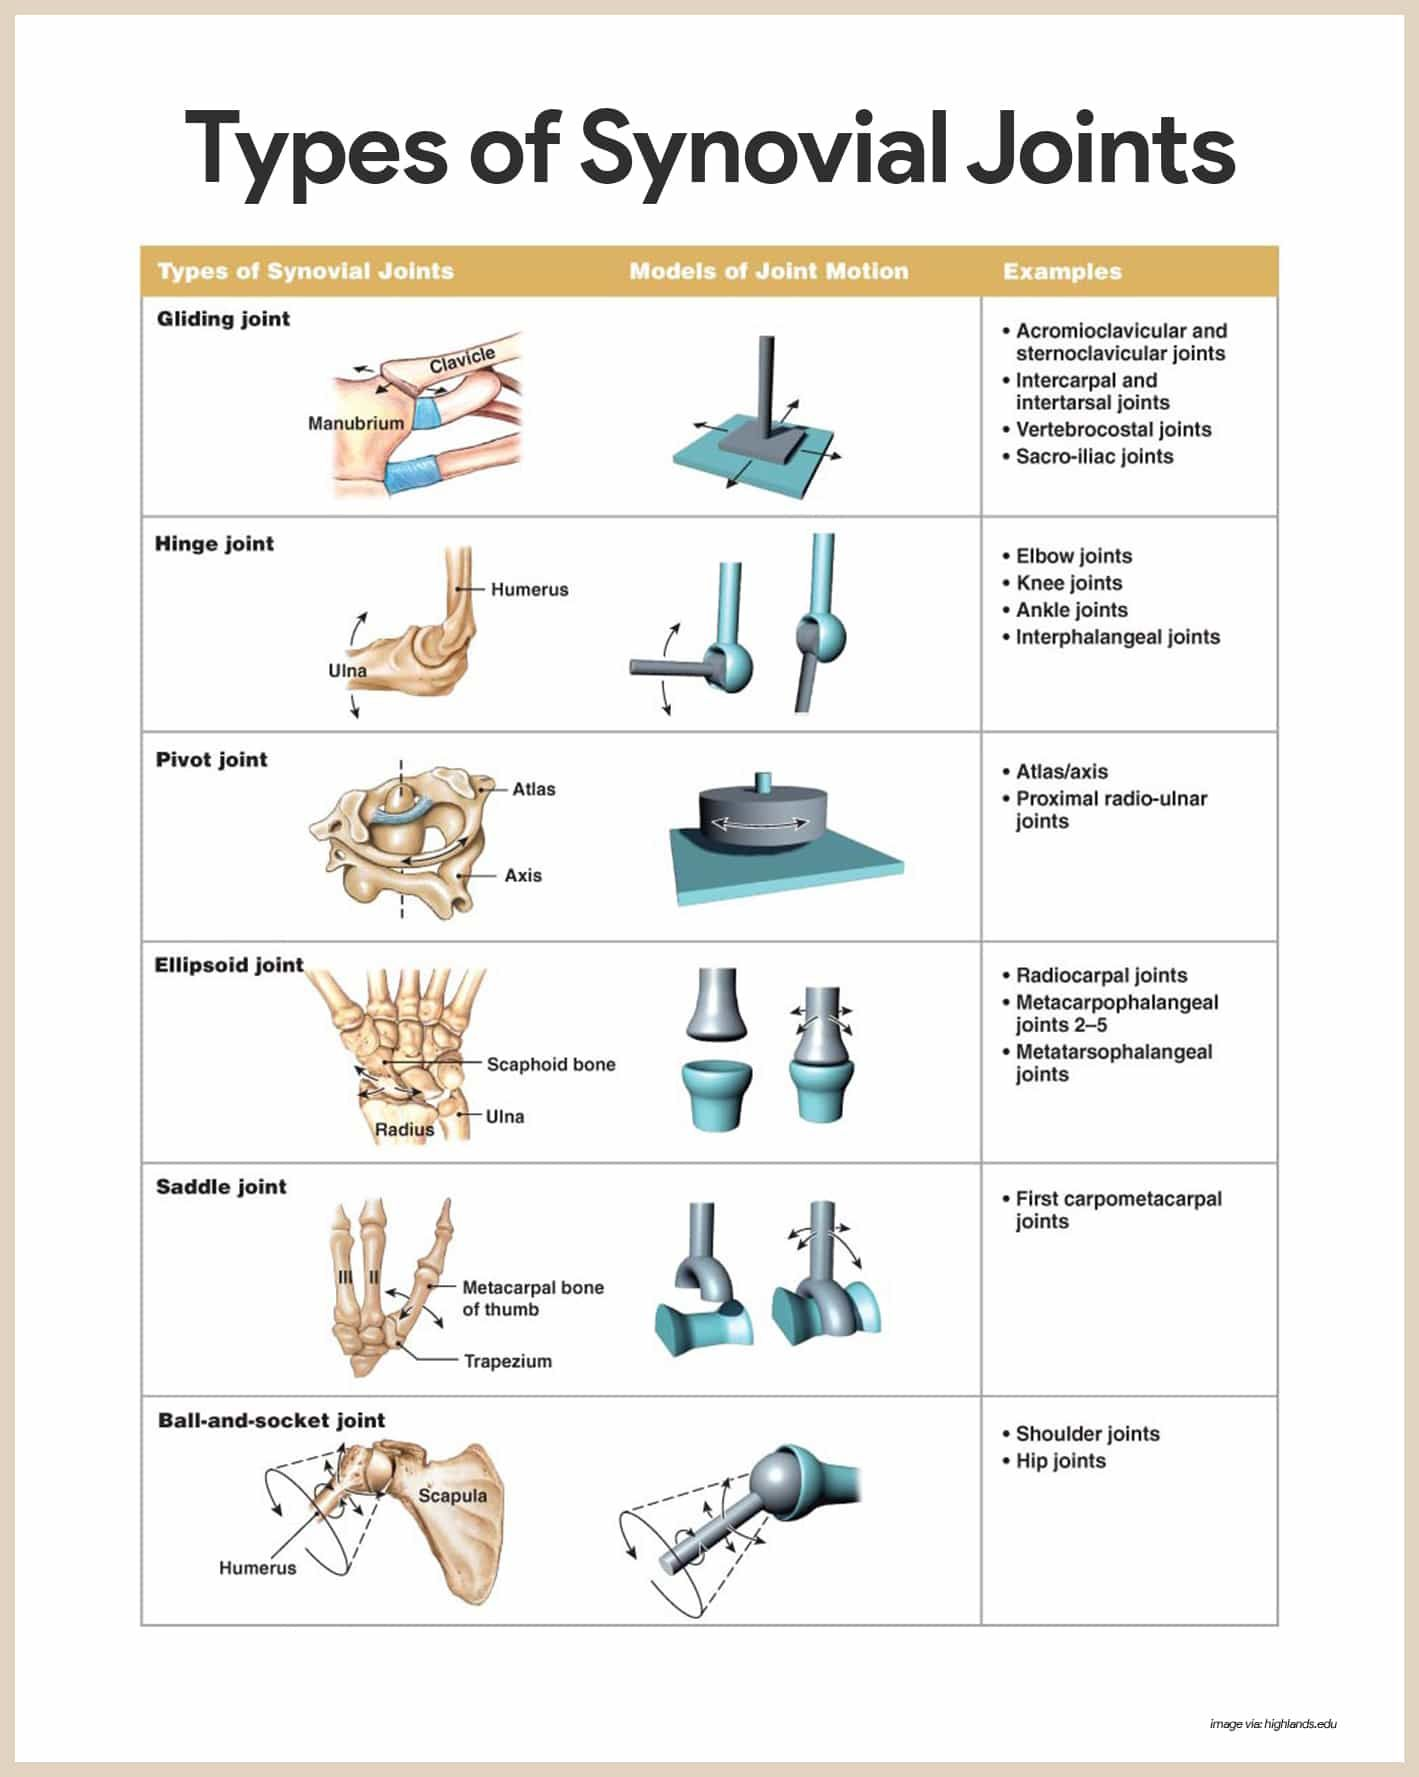 skeletal system anatomy and physiology synovial joint